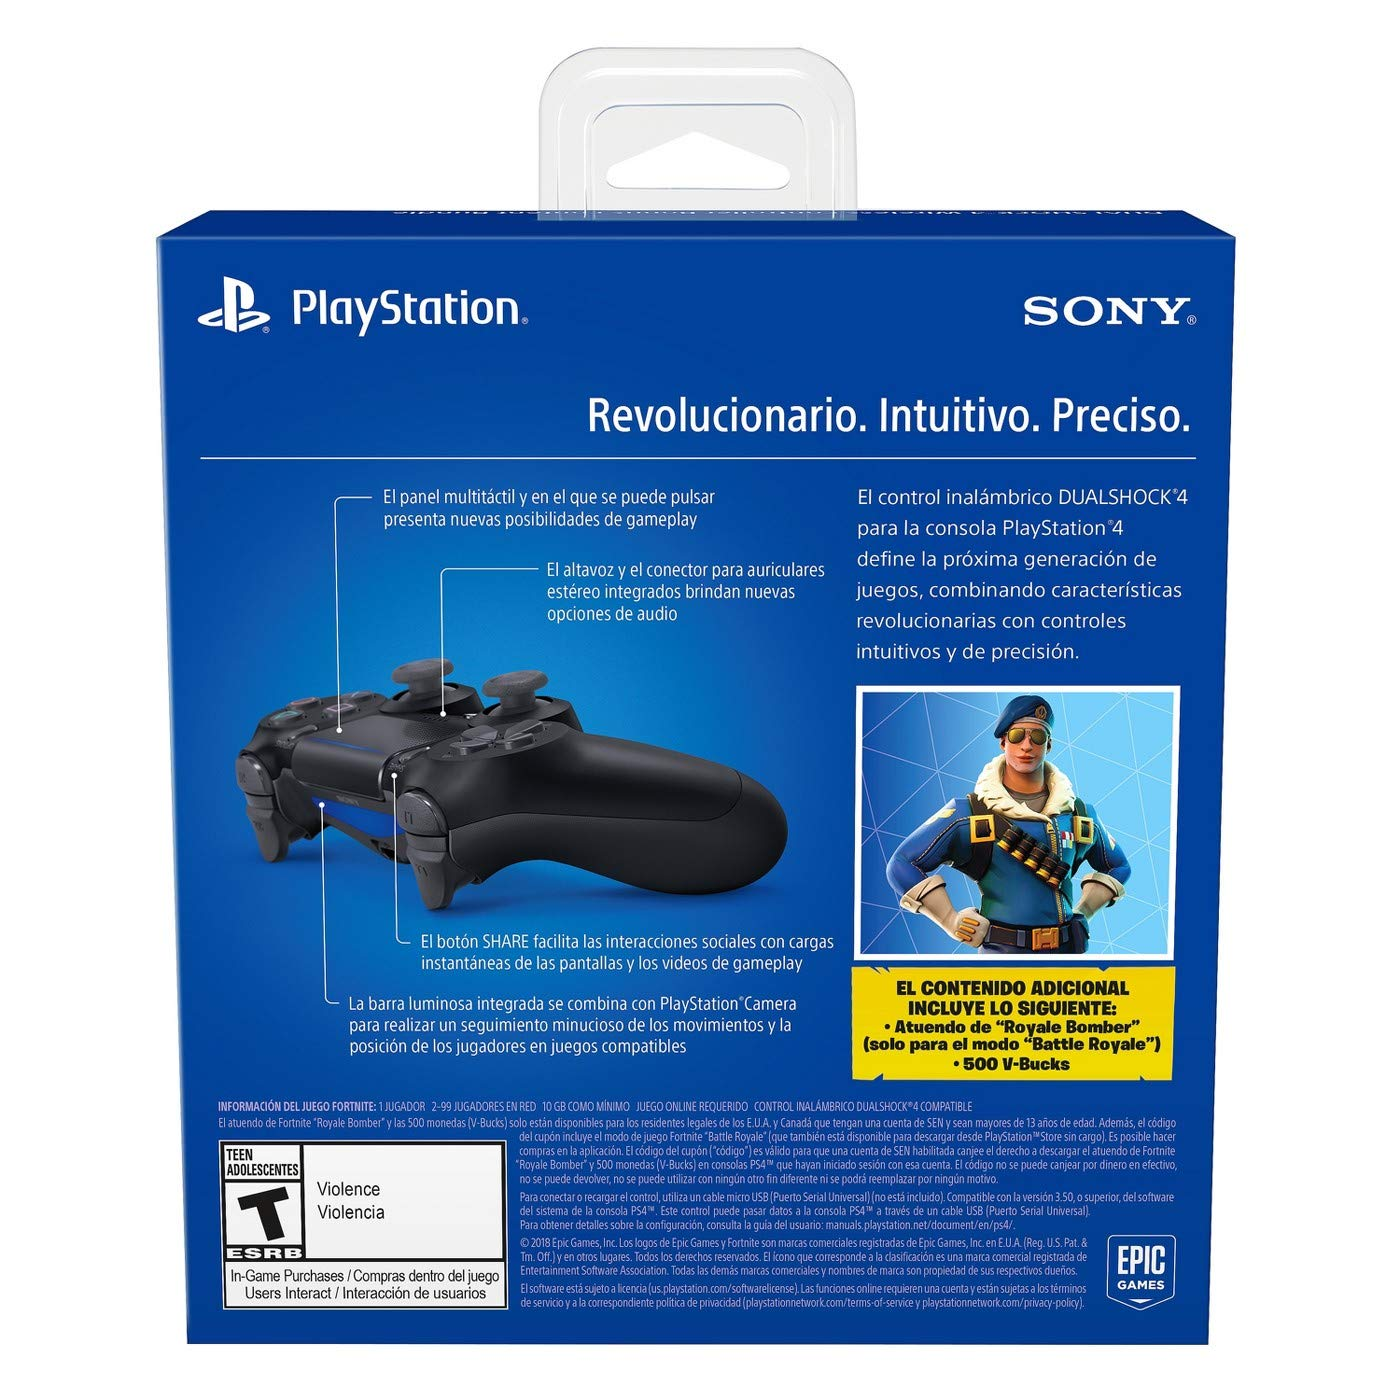 Amazon.com: Playstation 4 Fortnite Limited Bundle: Playstation Exclusive Royale Bomber Outfit, 500 V-Bucks, Days of Play Limited Edition Slim 1 TB Console ...